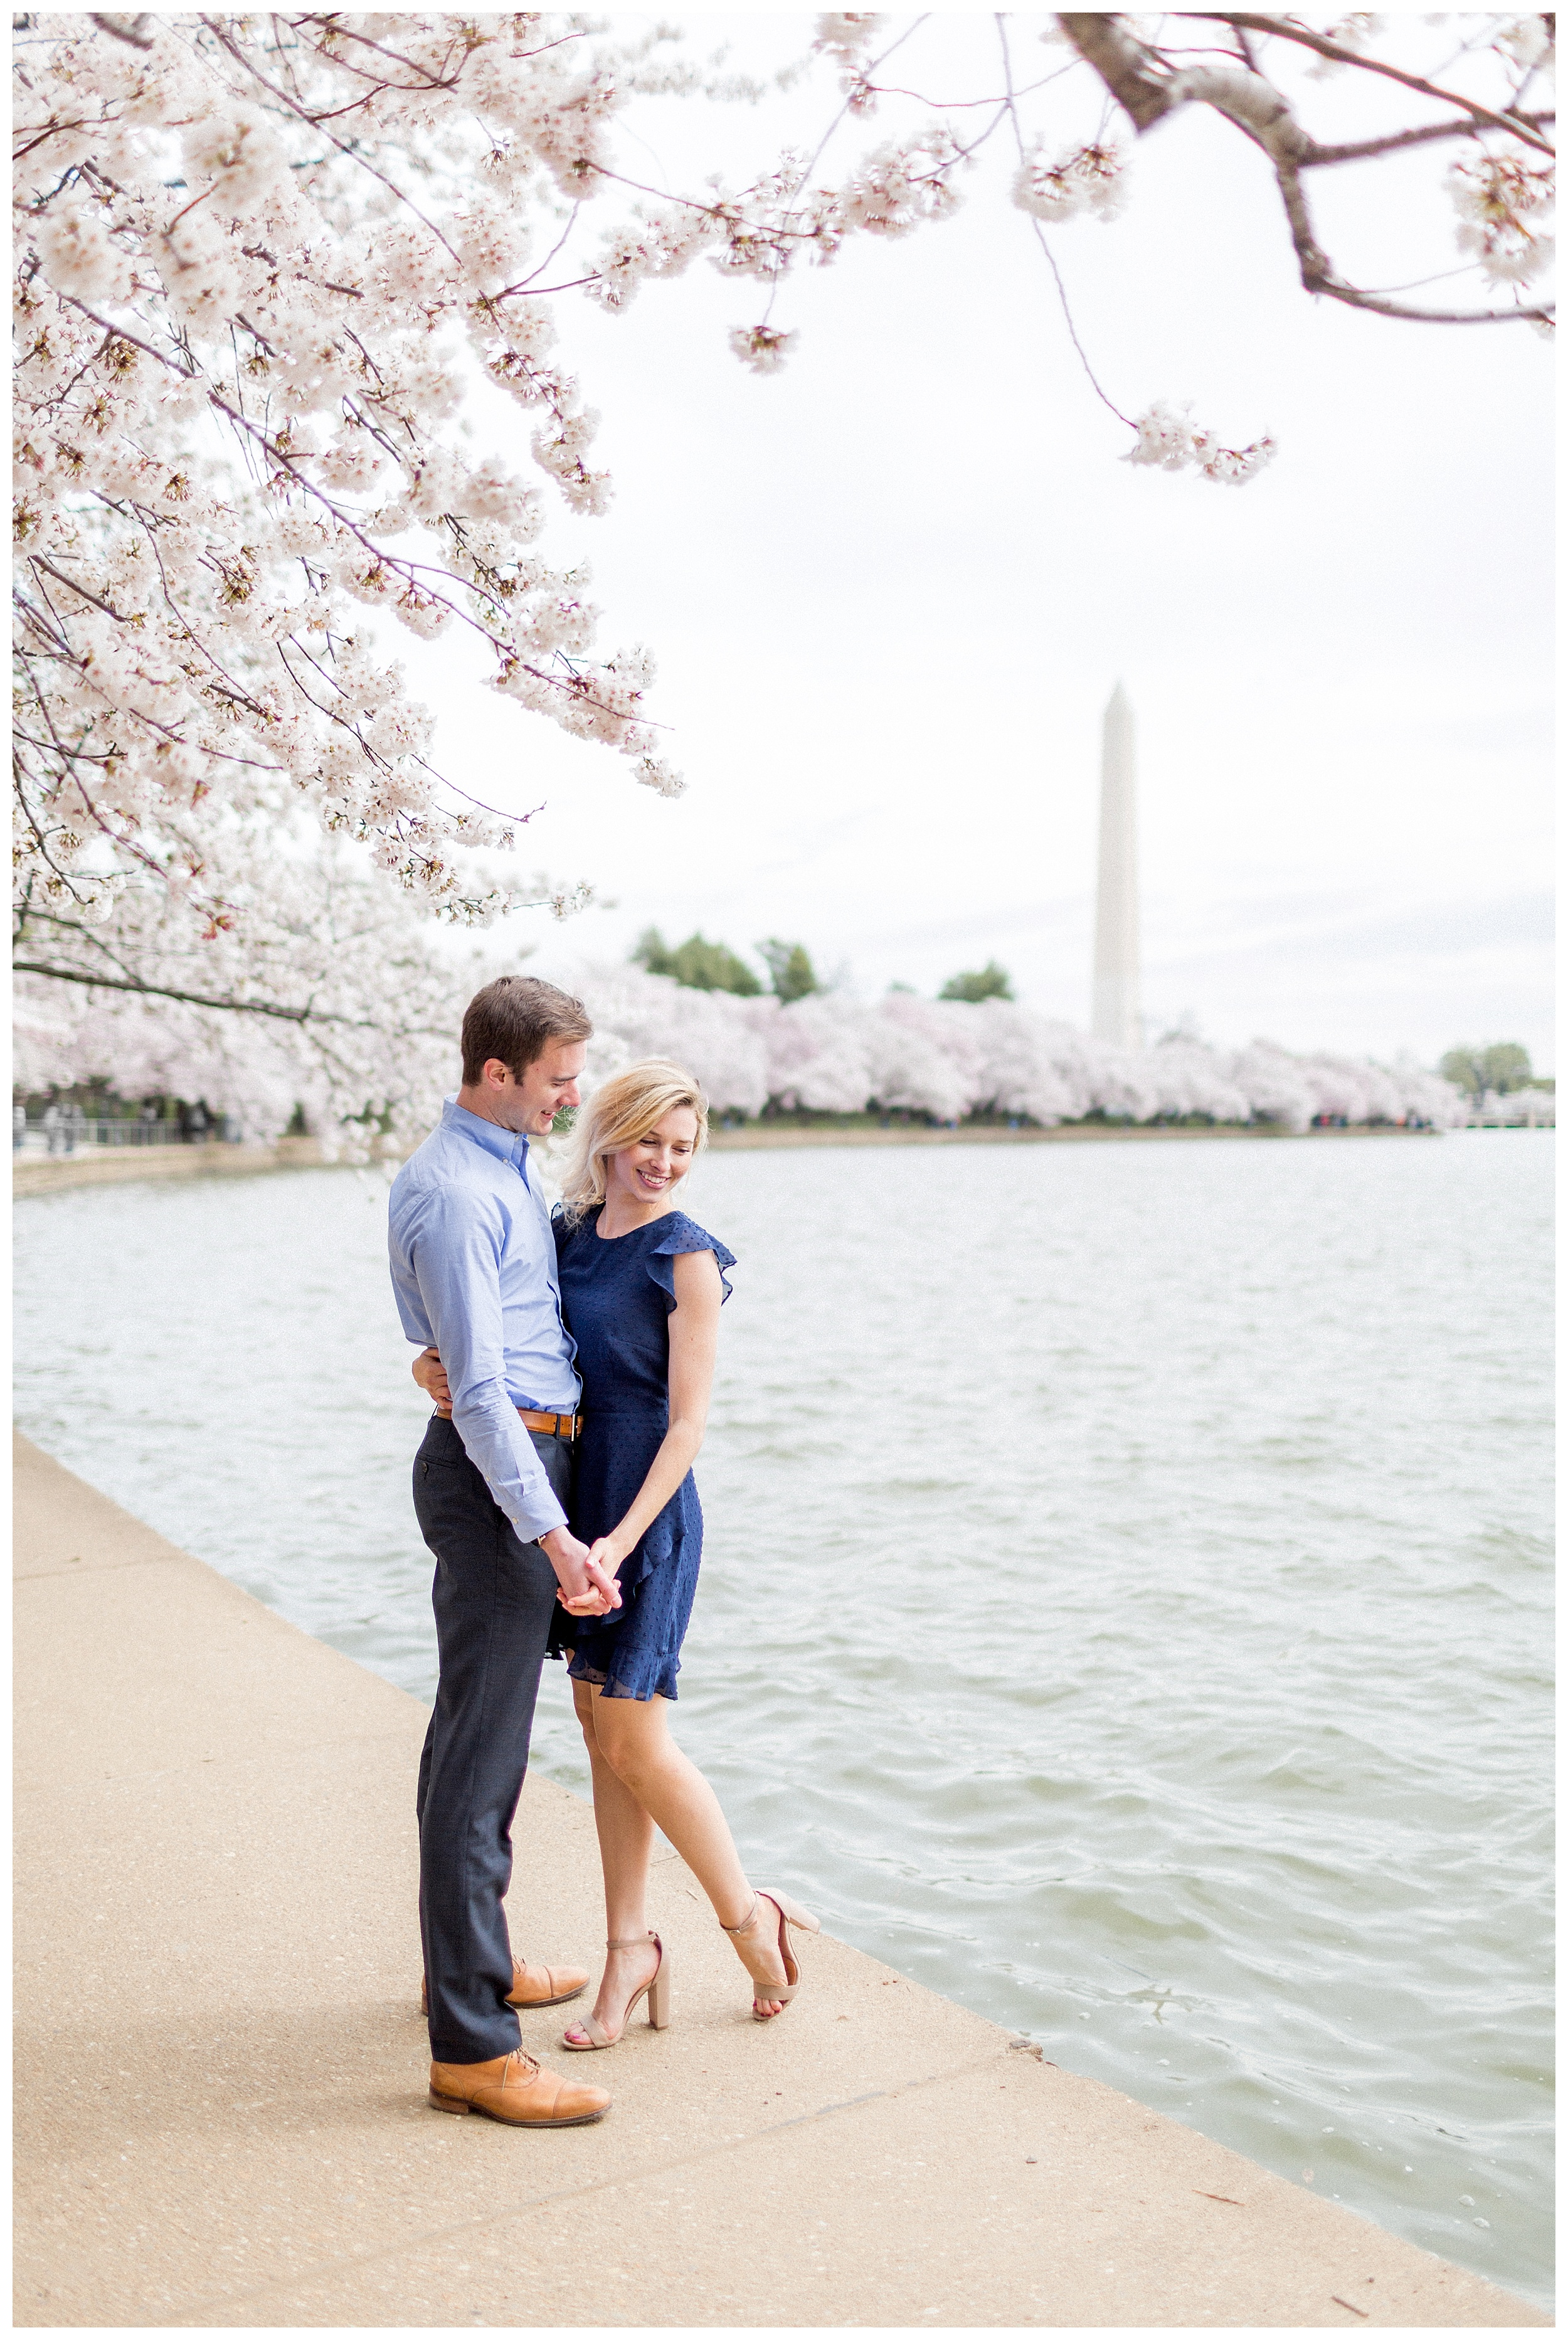 District of Columbia Cherry Blossom Engagement Session_0000.jpg